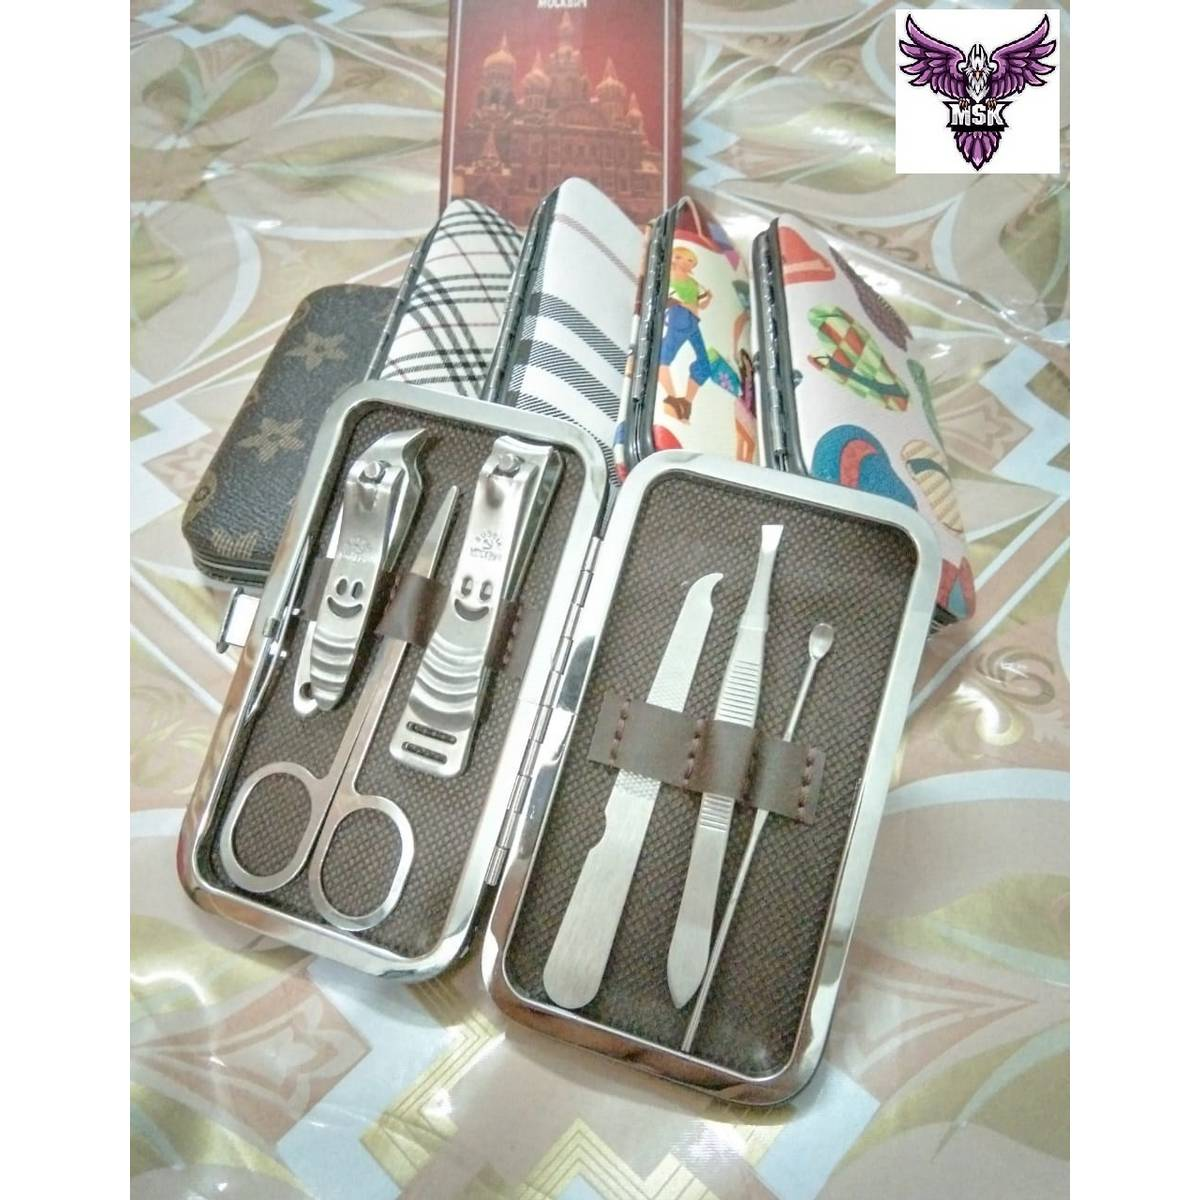 Taoye teemo 6pcs/set New Manicure Nail Clippers Pedicure Set Portable Travel Hygiene Kit Stainless Steel Nail Cutter Tool Set